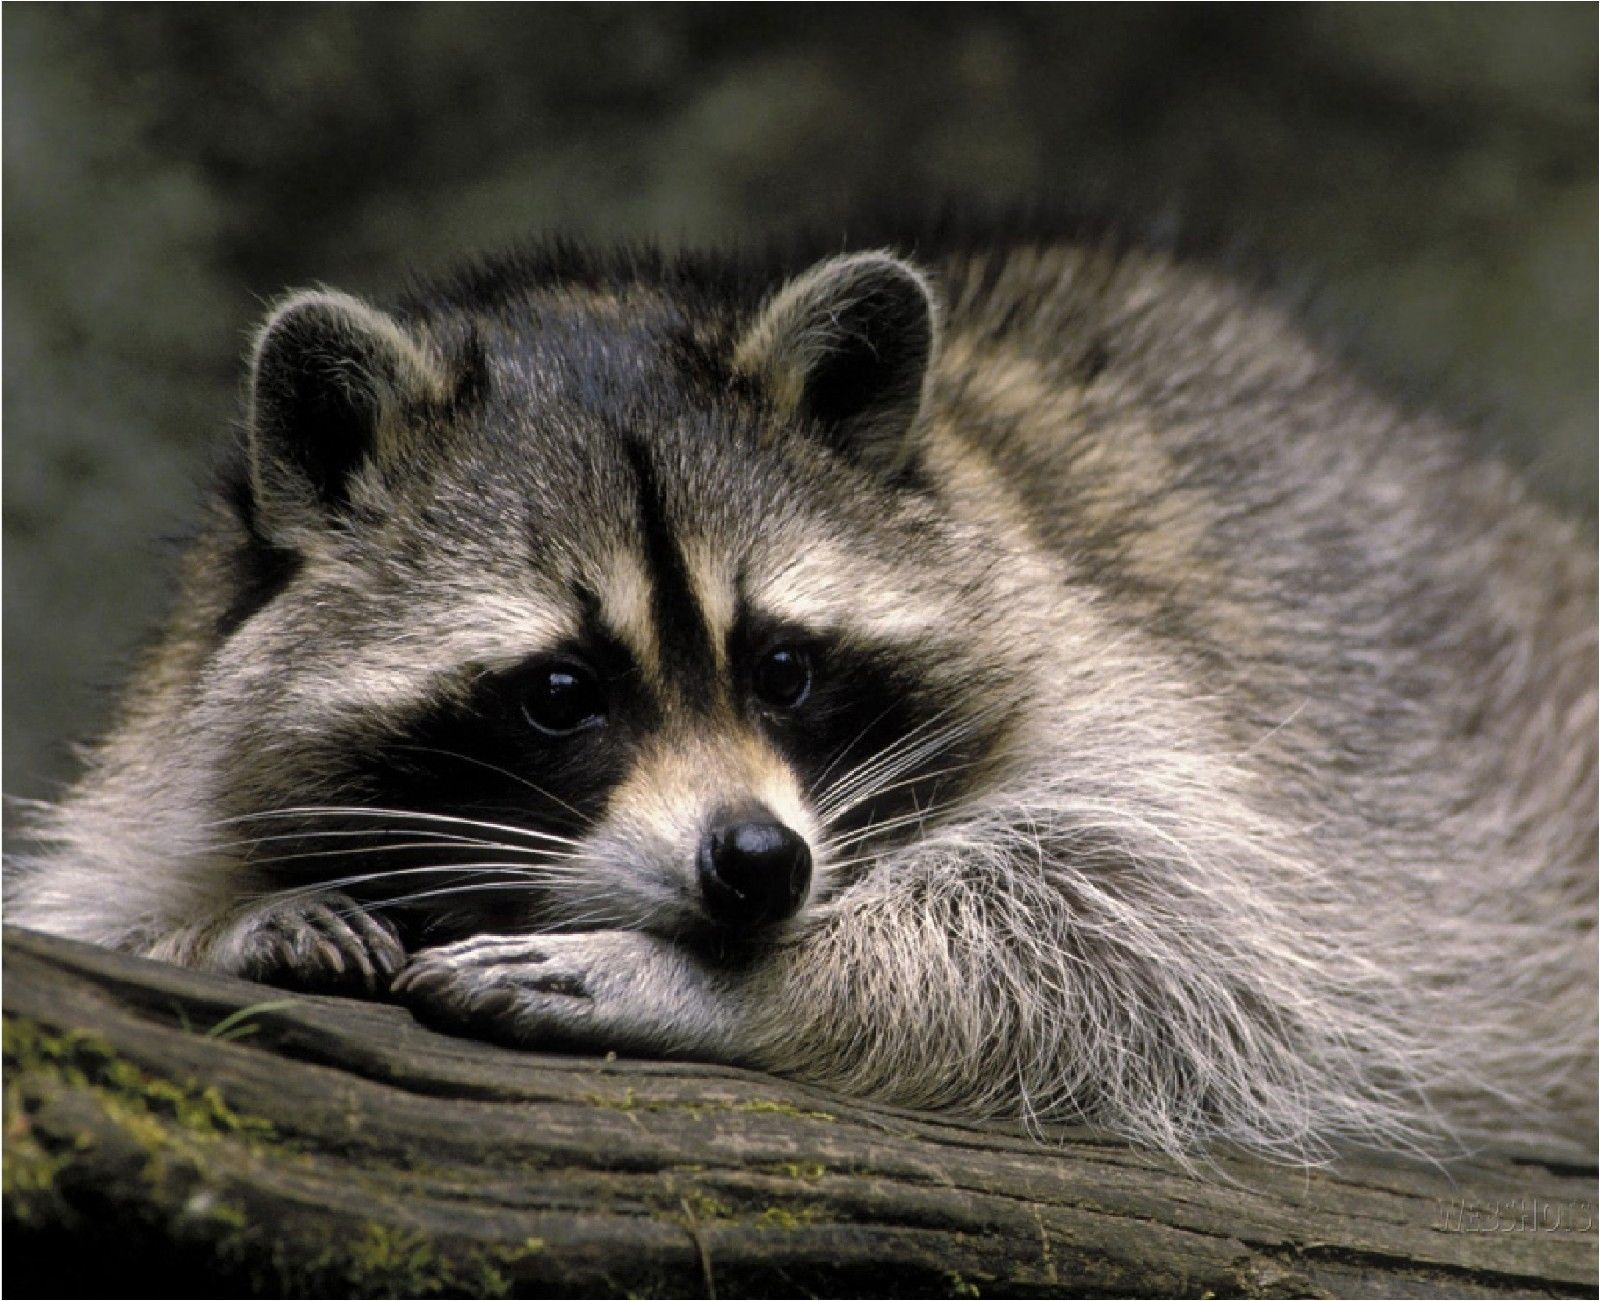 Resting Raccoon Image 2 Computer Mouse Pad 9 X 7 Animals Pet Raccoon Animals Beautiful